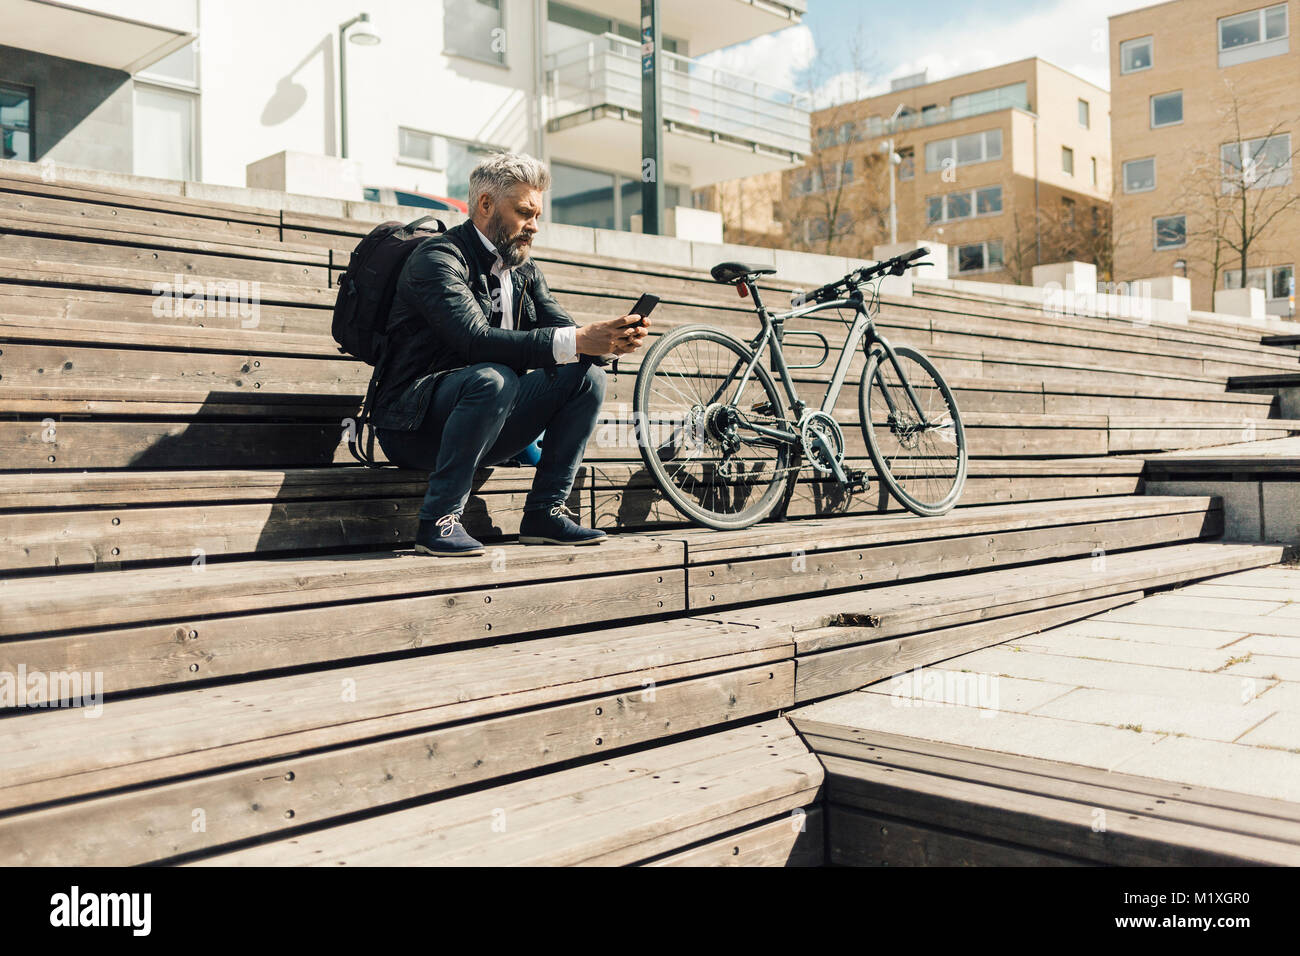 Man on staircase with bicycle in Sodermanland, Sweden - Stock Image